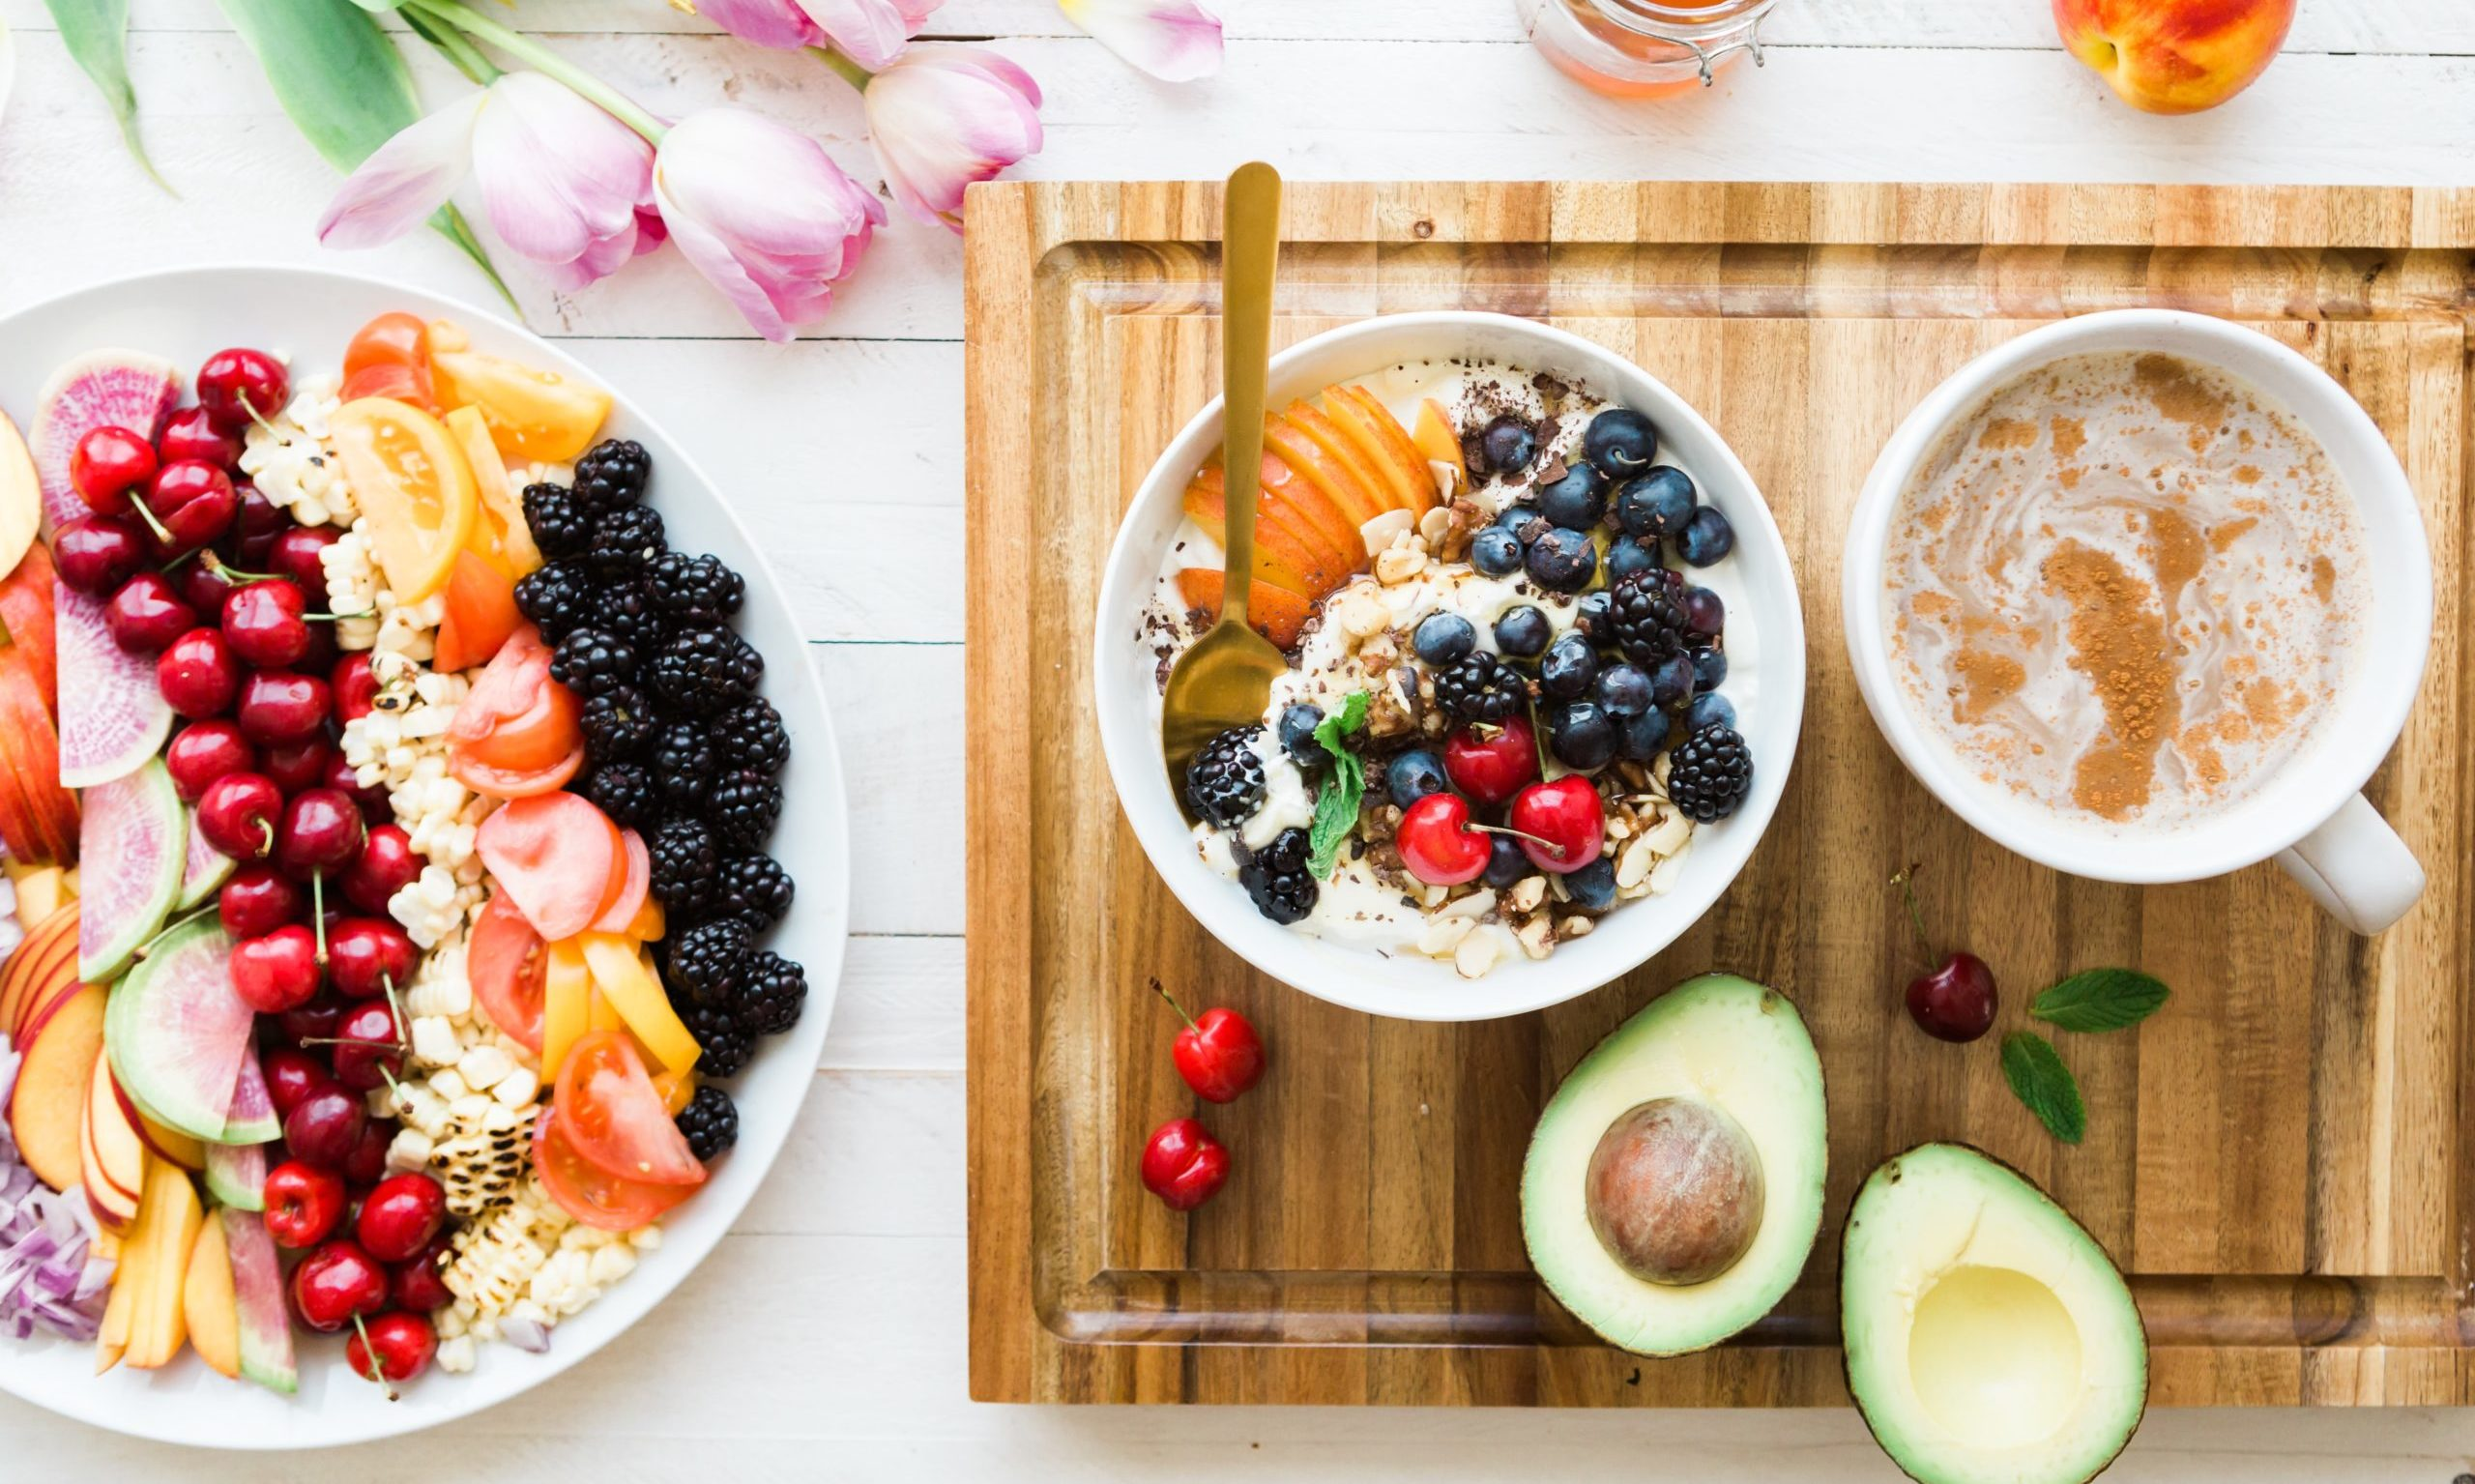 fruit oatmeal and tea our care holistic intervention Endless Journey Hospice Omaha Nebraska